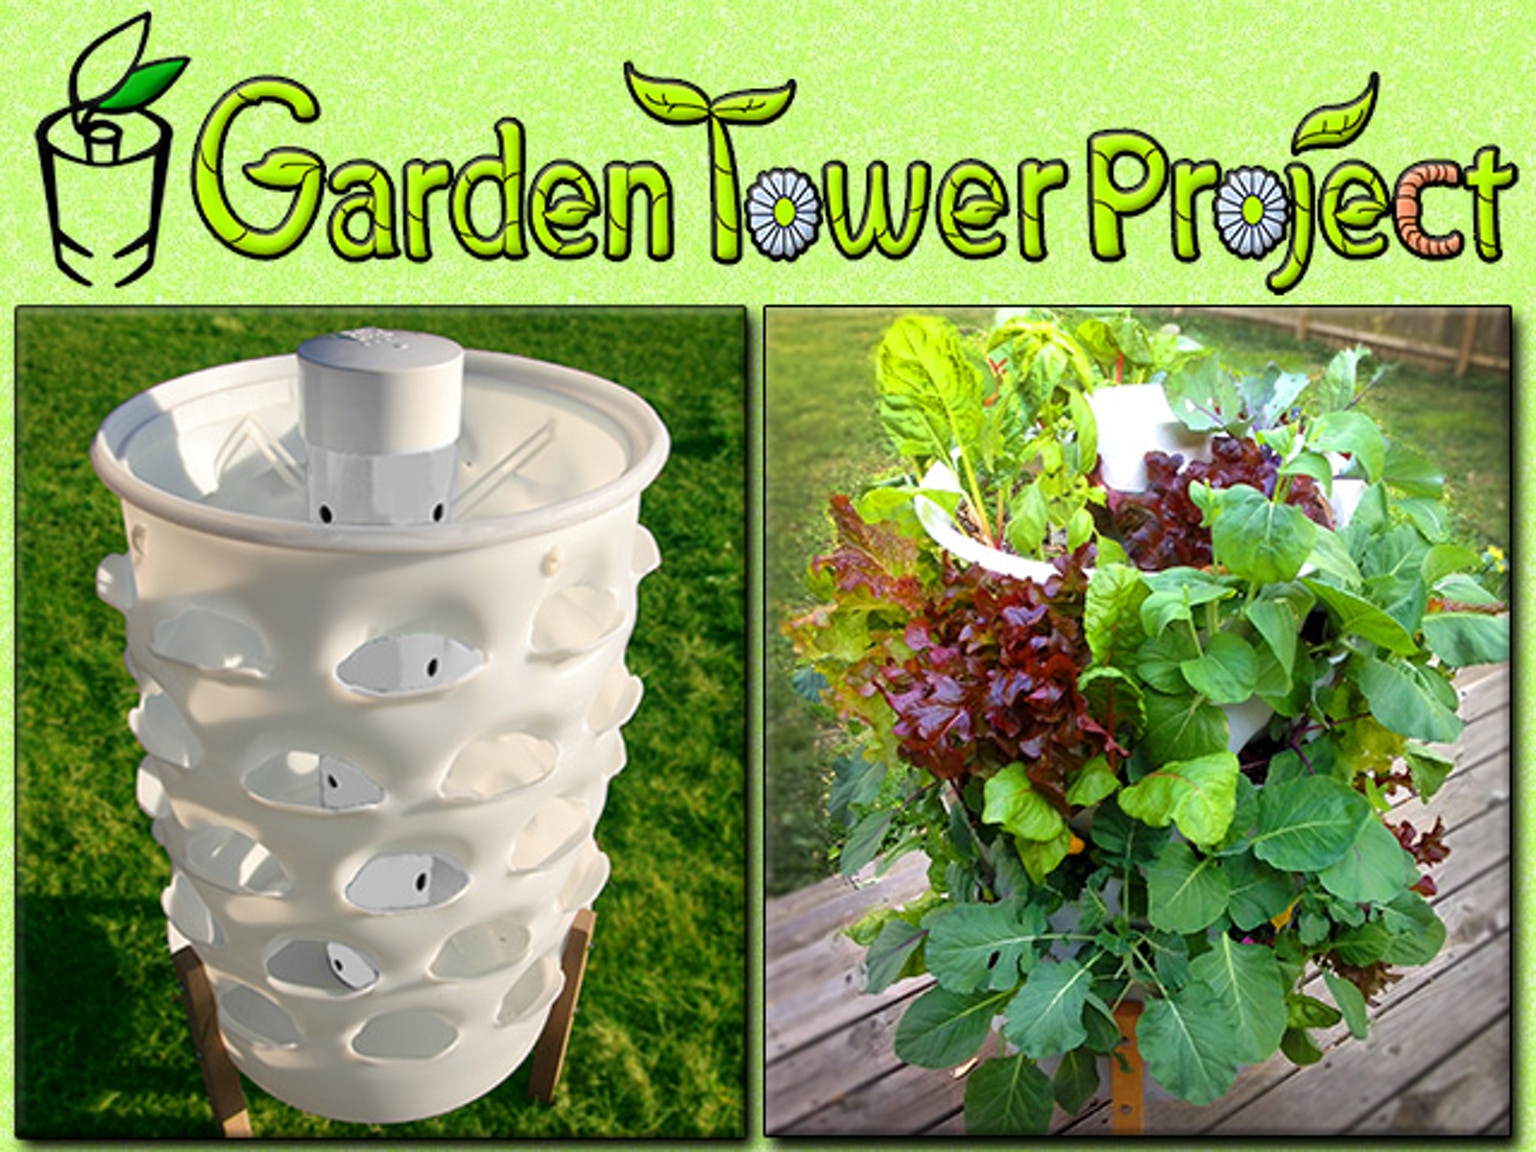 Garden Tower Composting 50 Plants Fresh Food Anywhere By Garden Tower Project Kickstarter